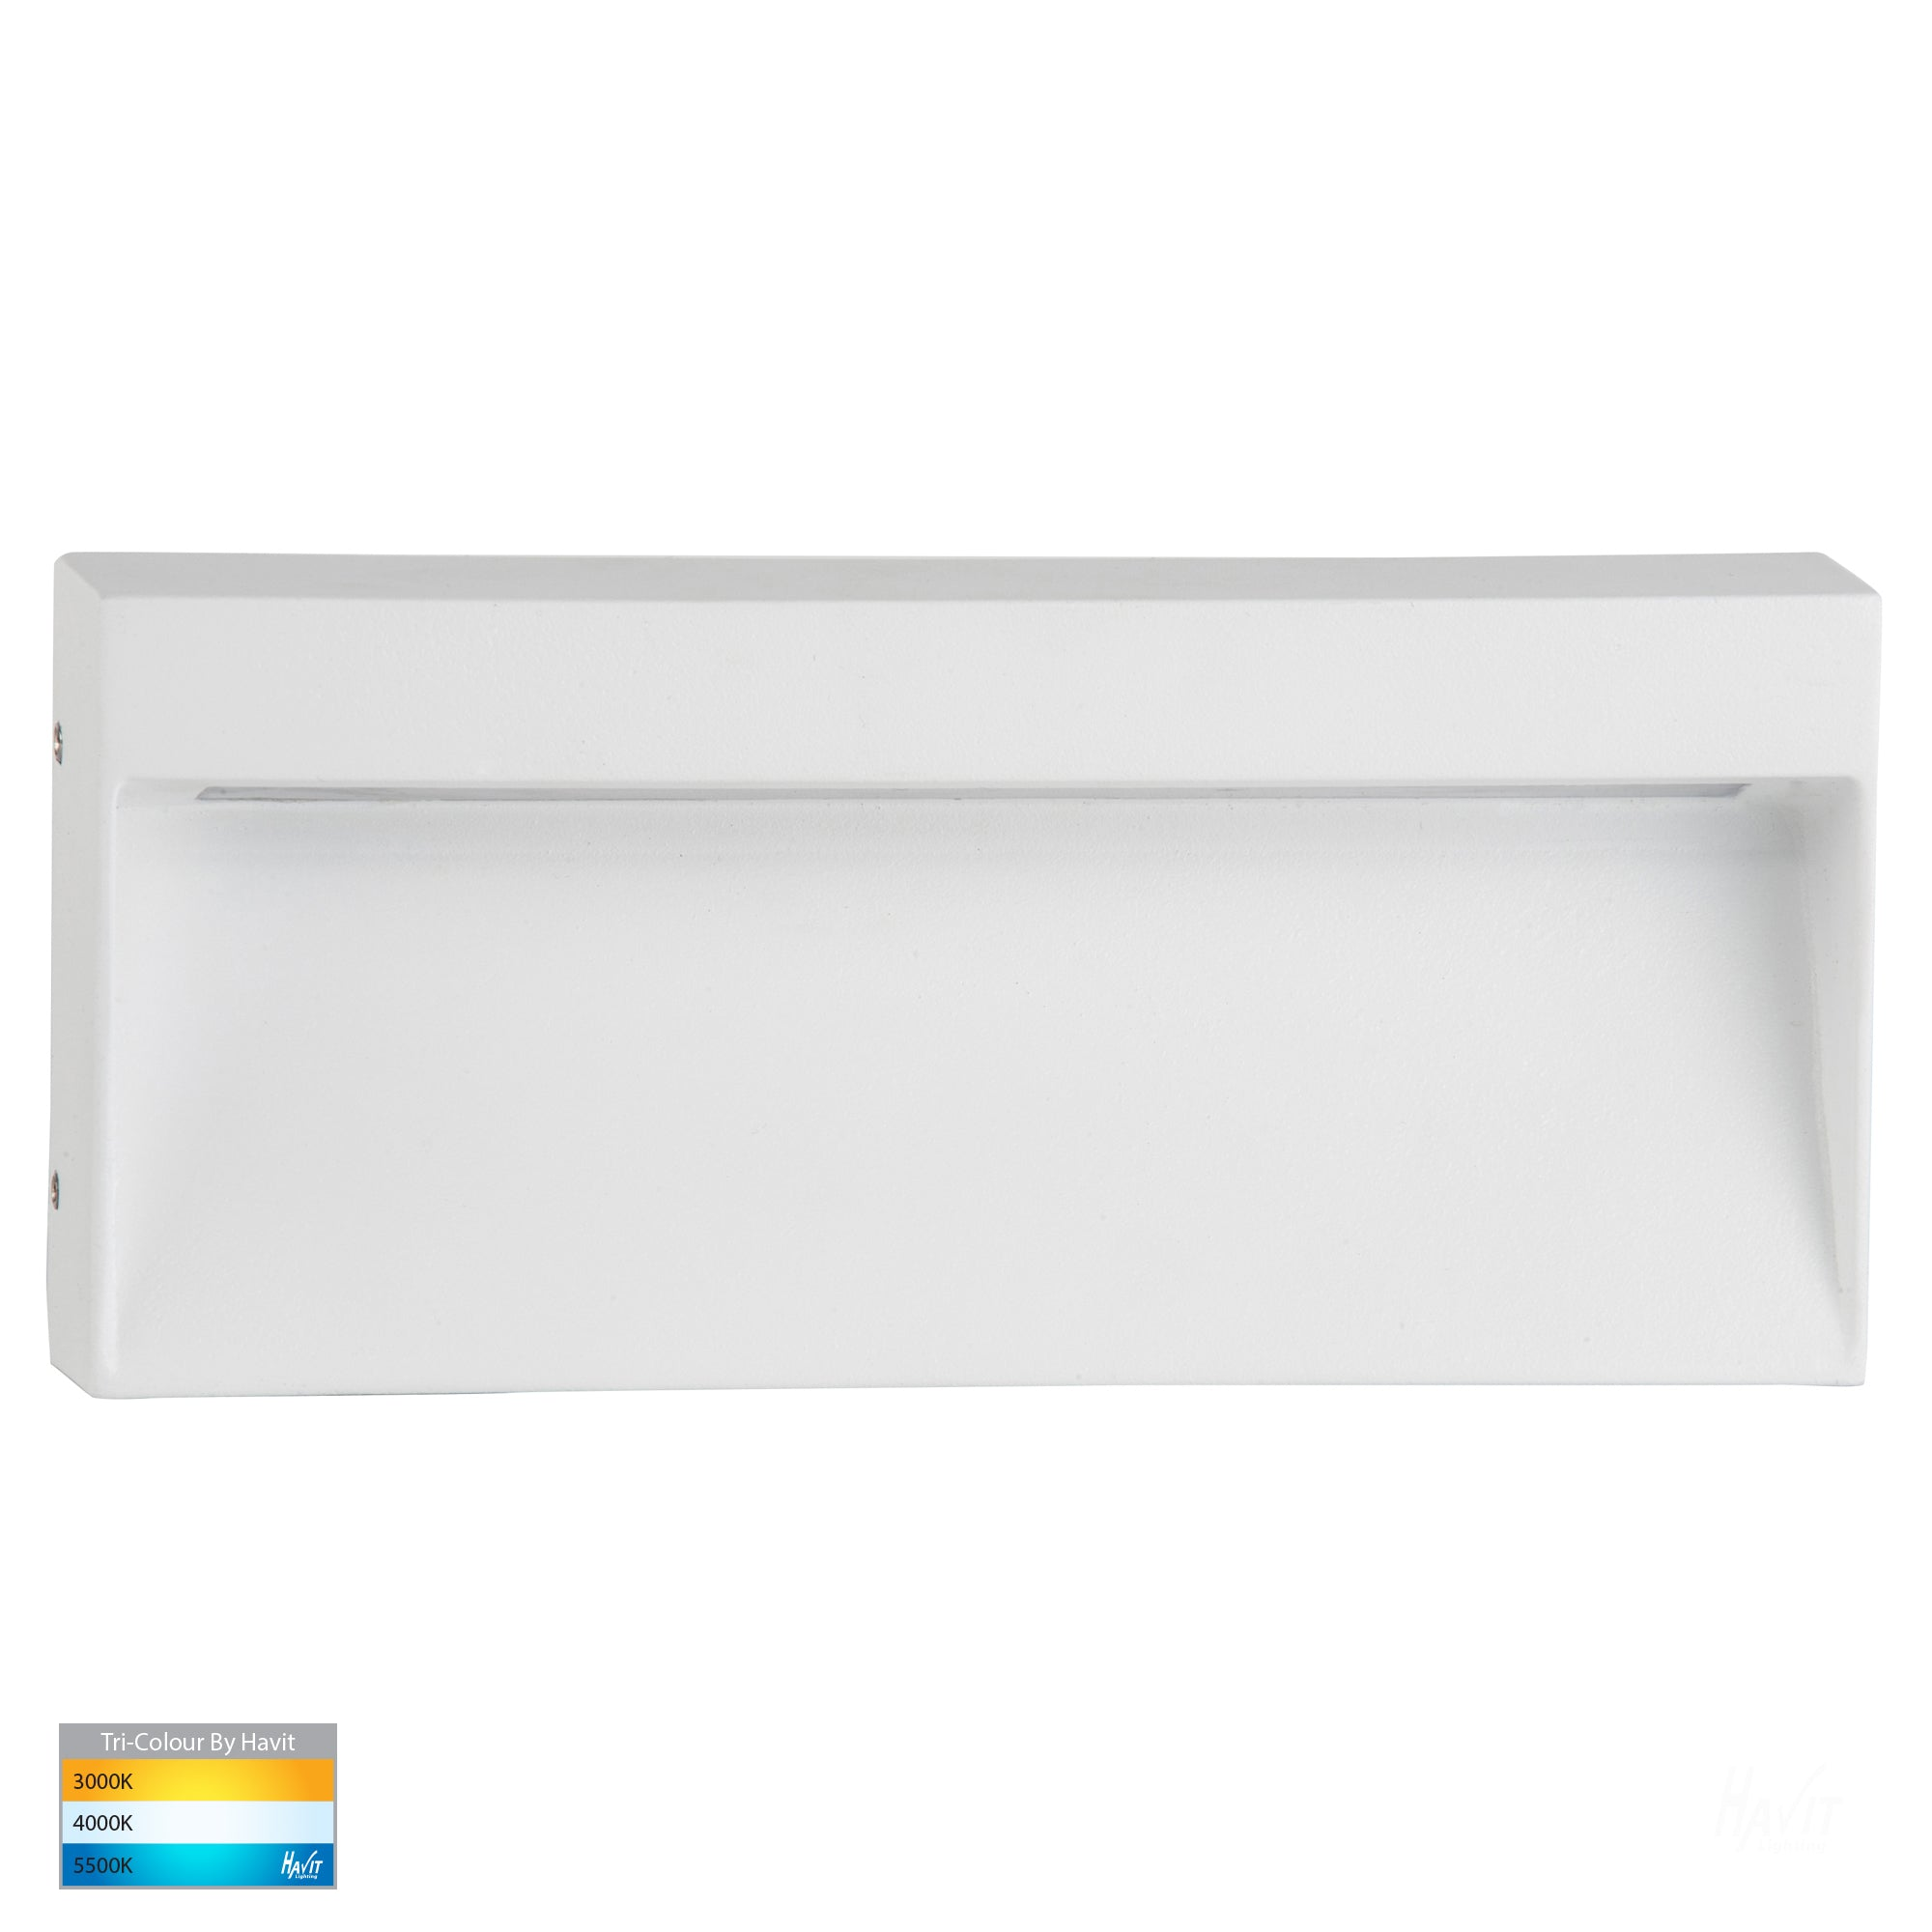 HV3275T-WHT - Virsma White Rectangle LED Step lights